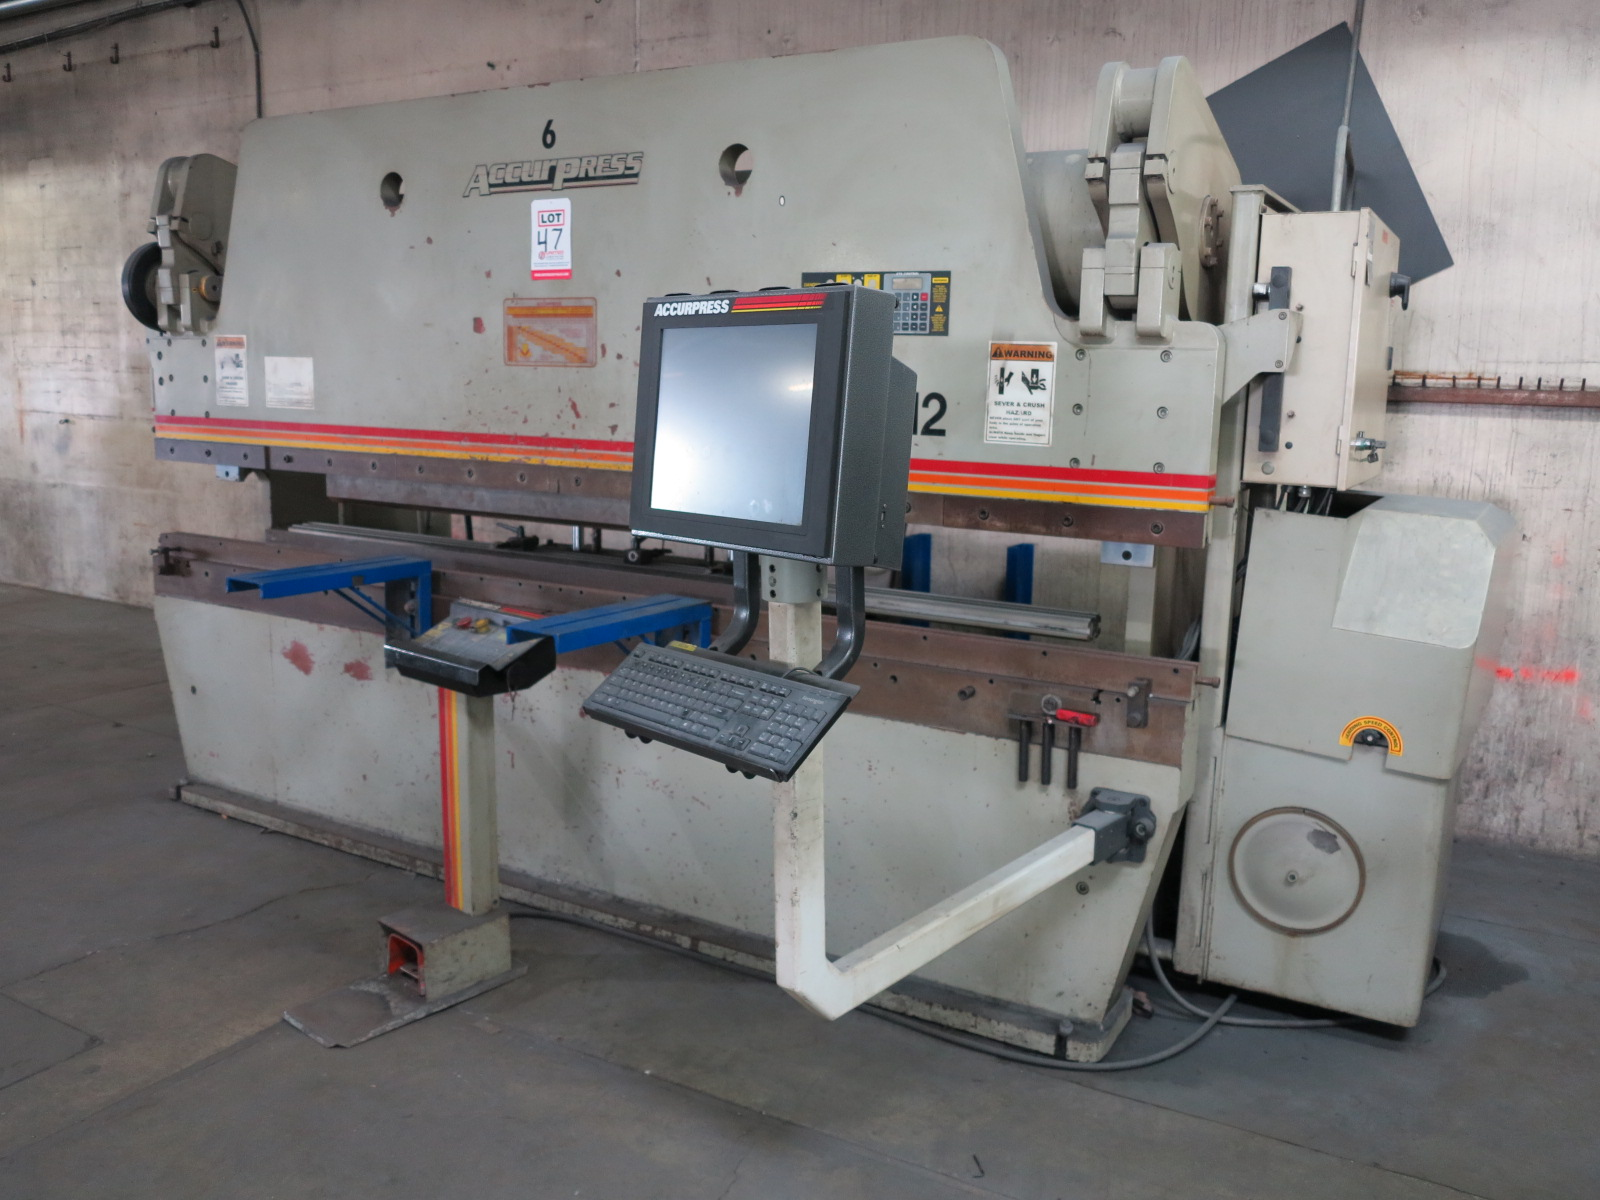 1999 ACCURPRESS BRAKE, MODEL 7017512, 175-TON X 12', E&S CONTROL, CNC BACKGAUGE, SUPPORTS, S/N 5758 - Image 2 of 7